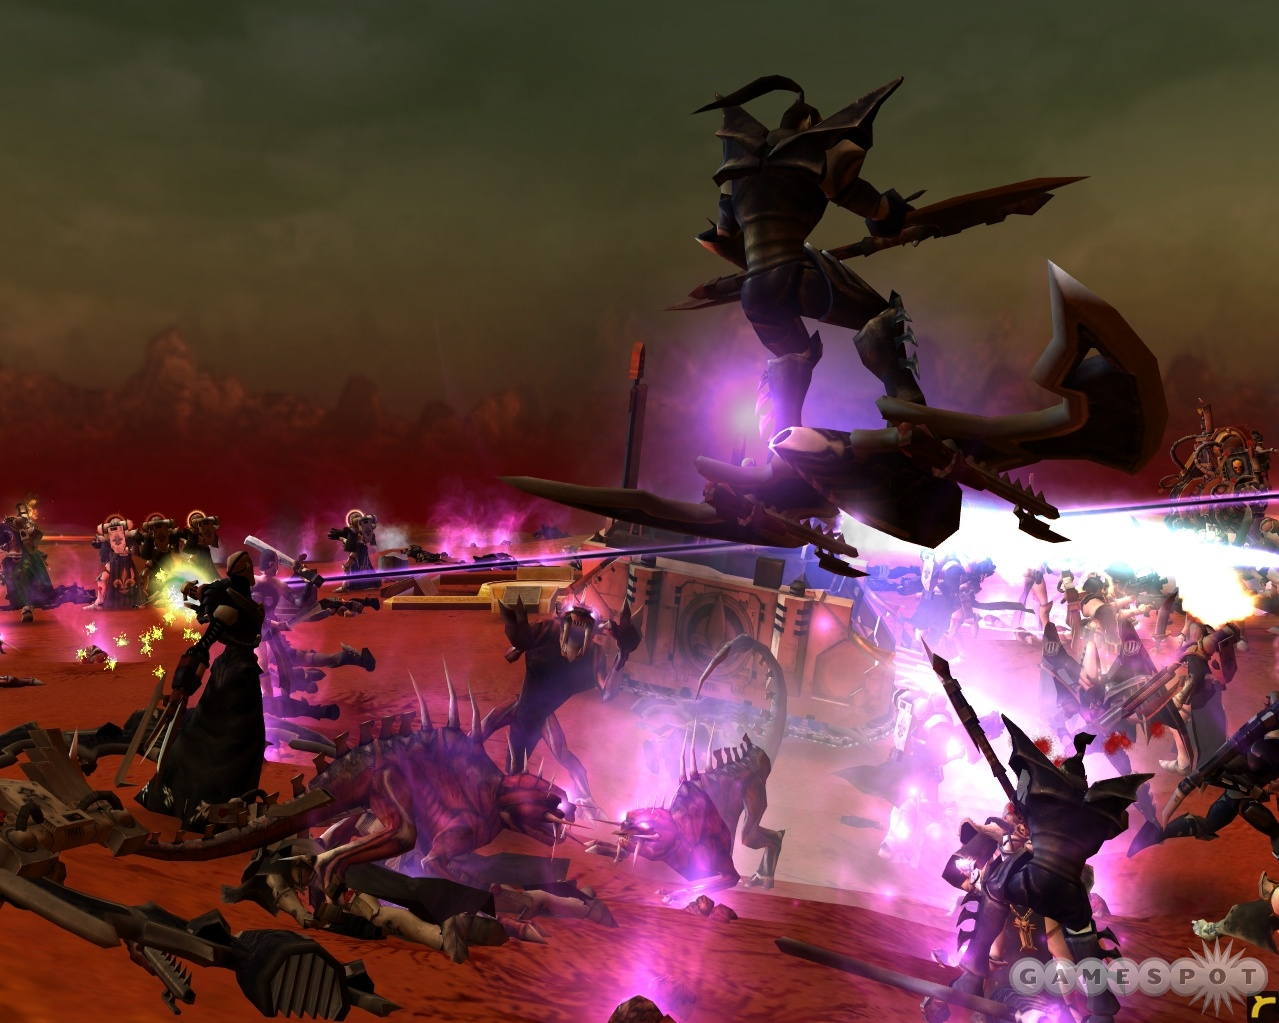 The Warhammer 40,000 universe is a really bloody place.